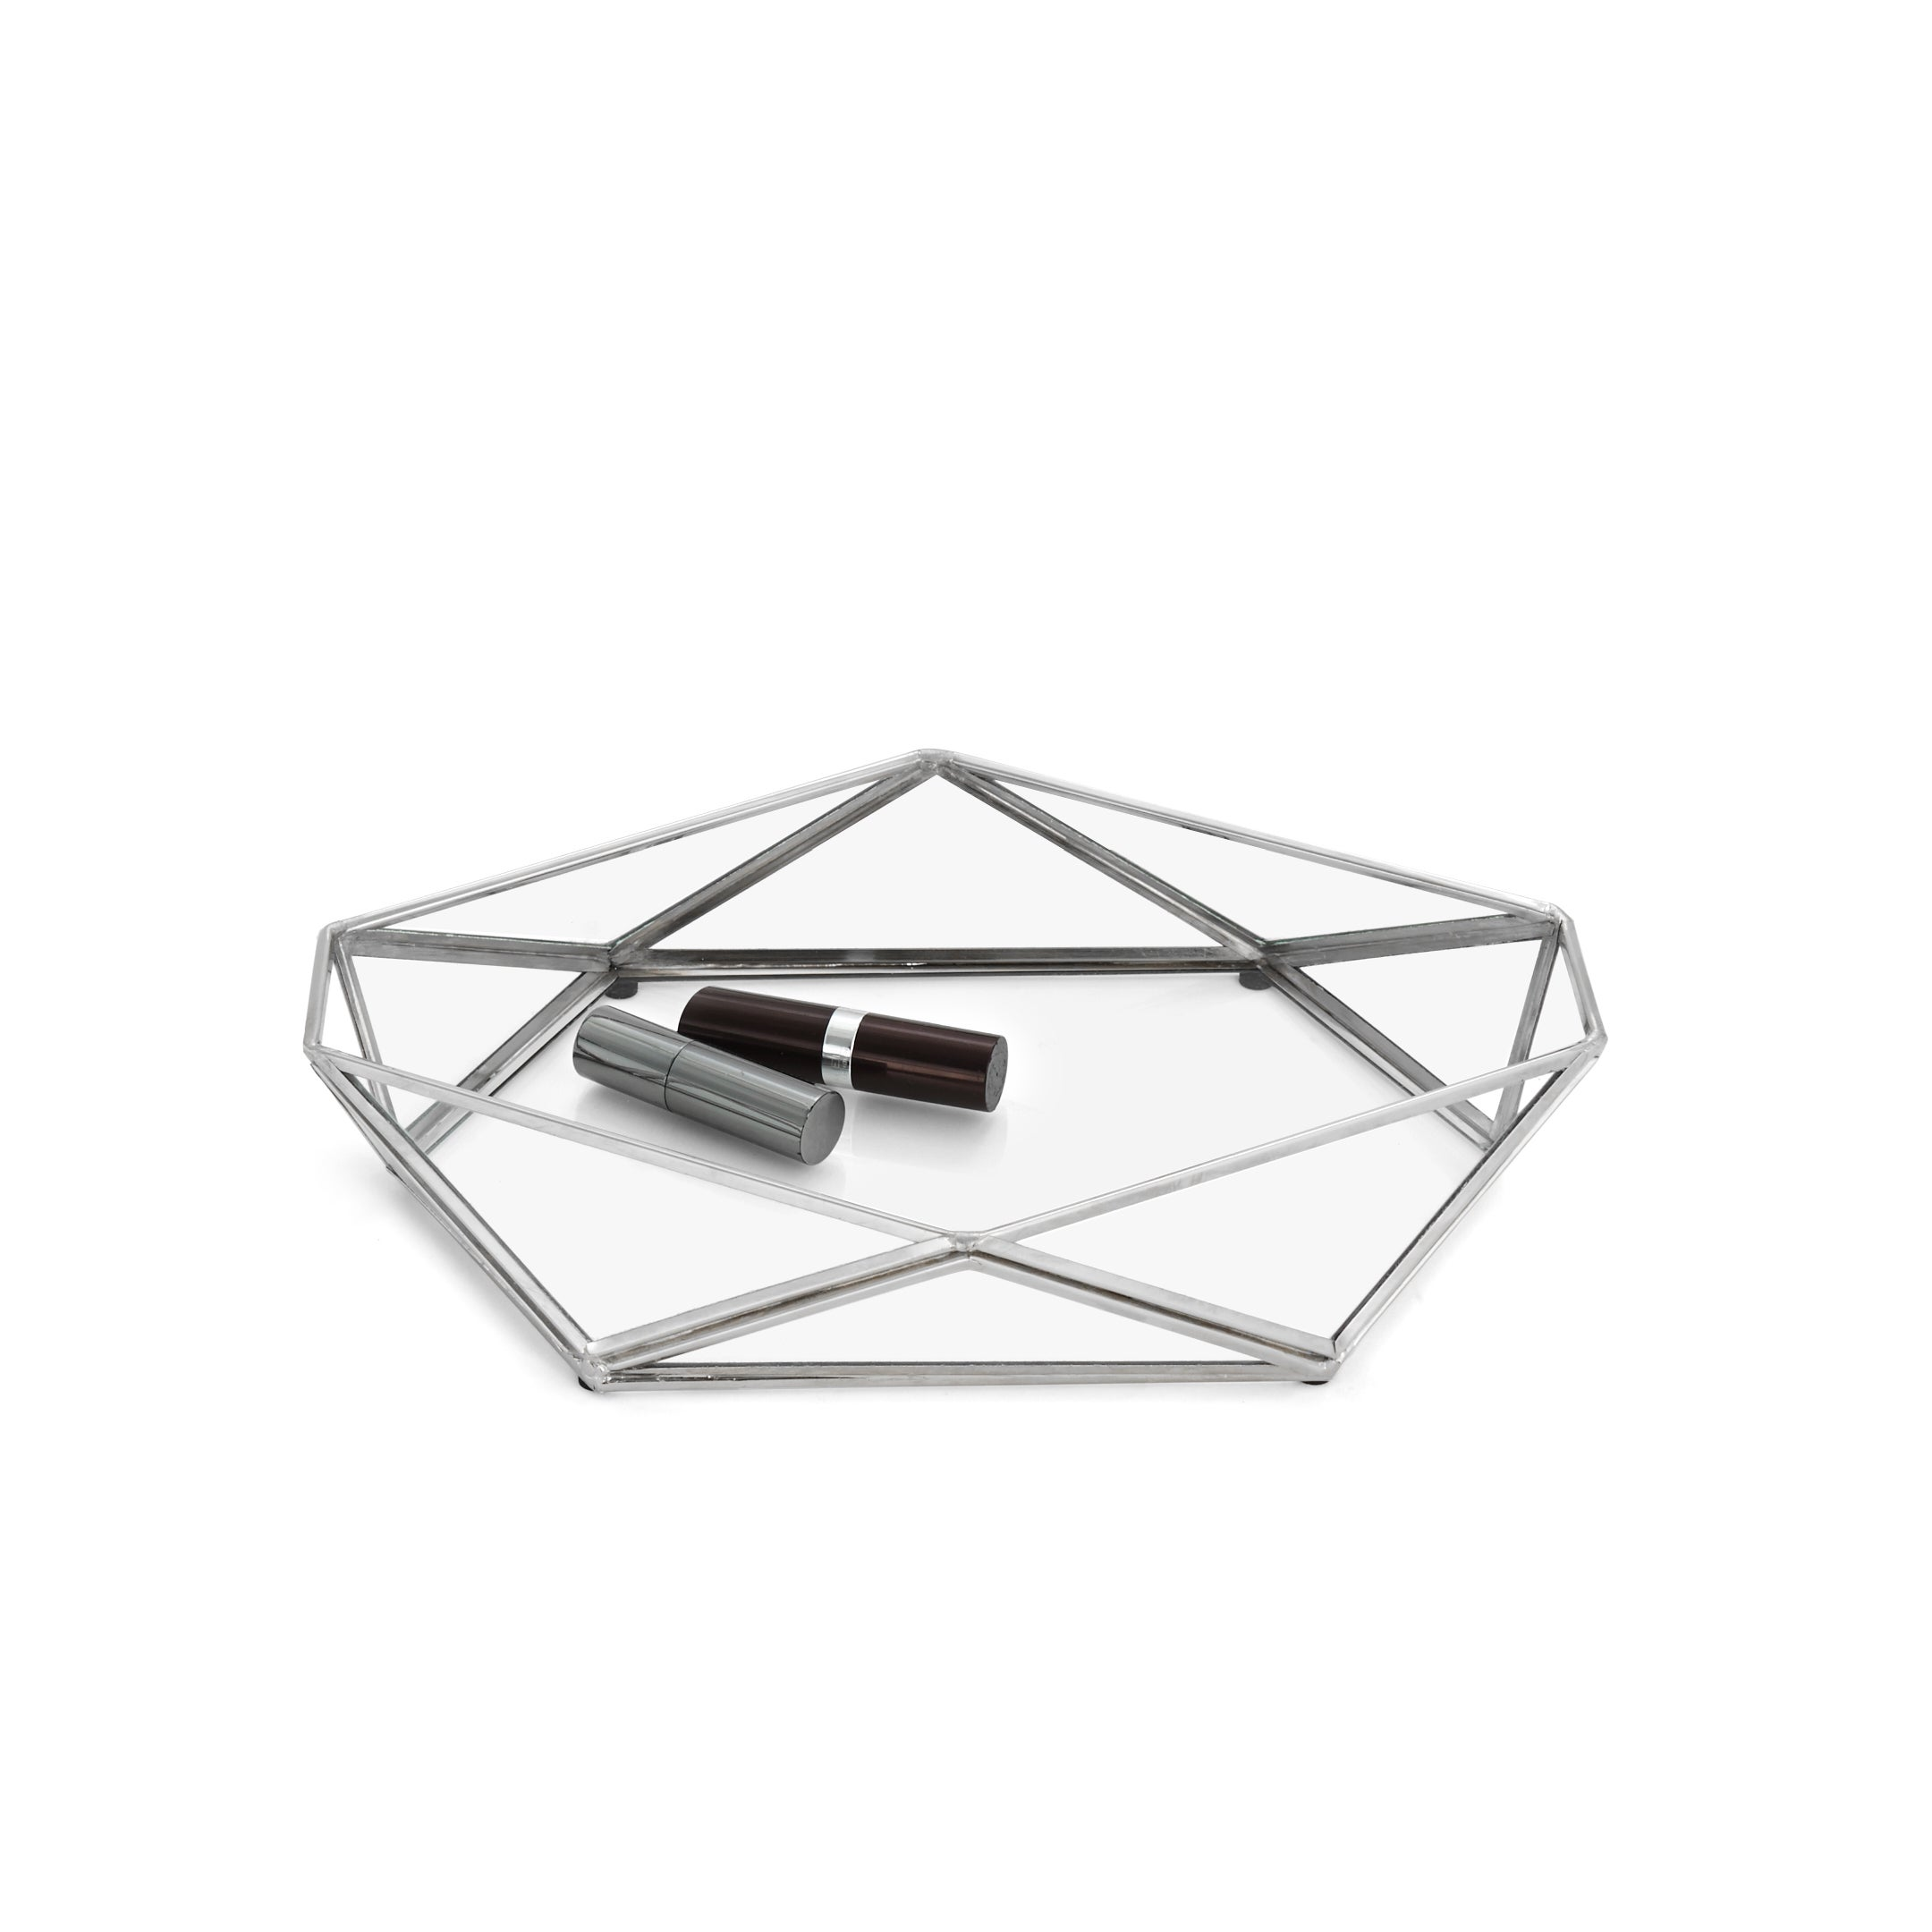 Paradigm Trends Prism Storage Tray (Silver), Clear (Brass)